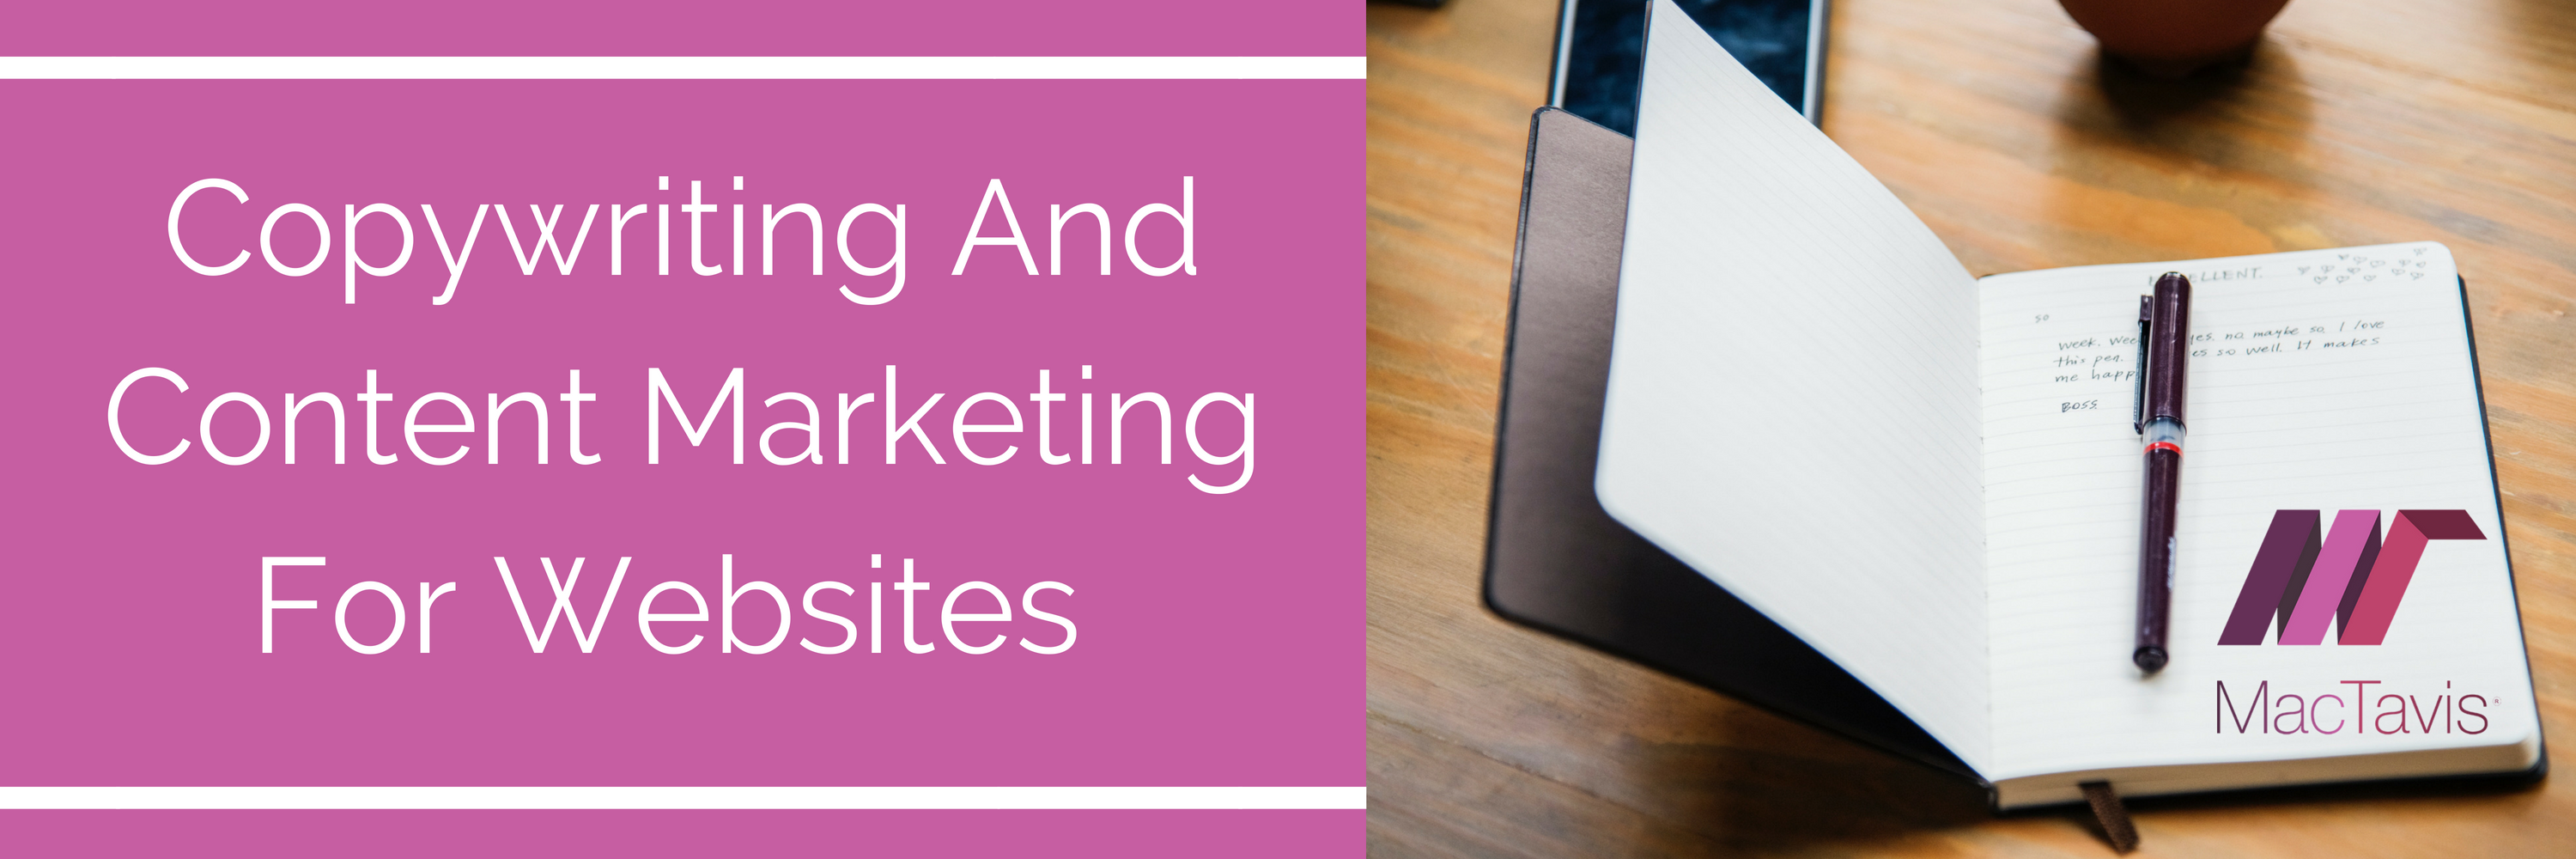 Understanding Copywriting And Content Marketing For Your Website